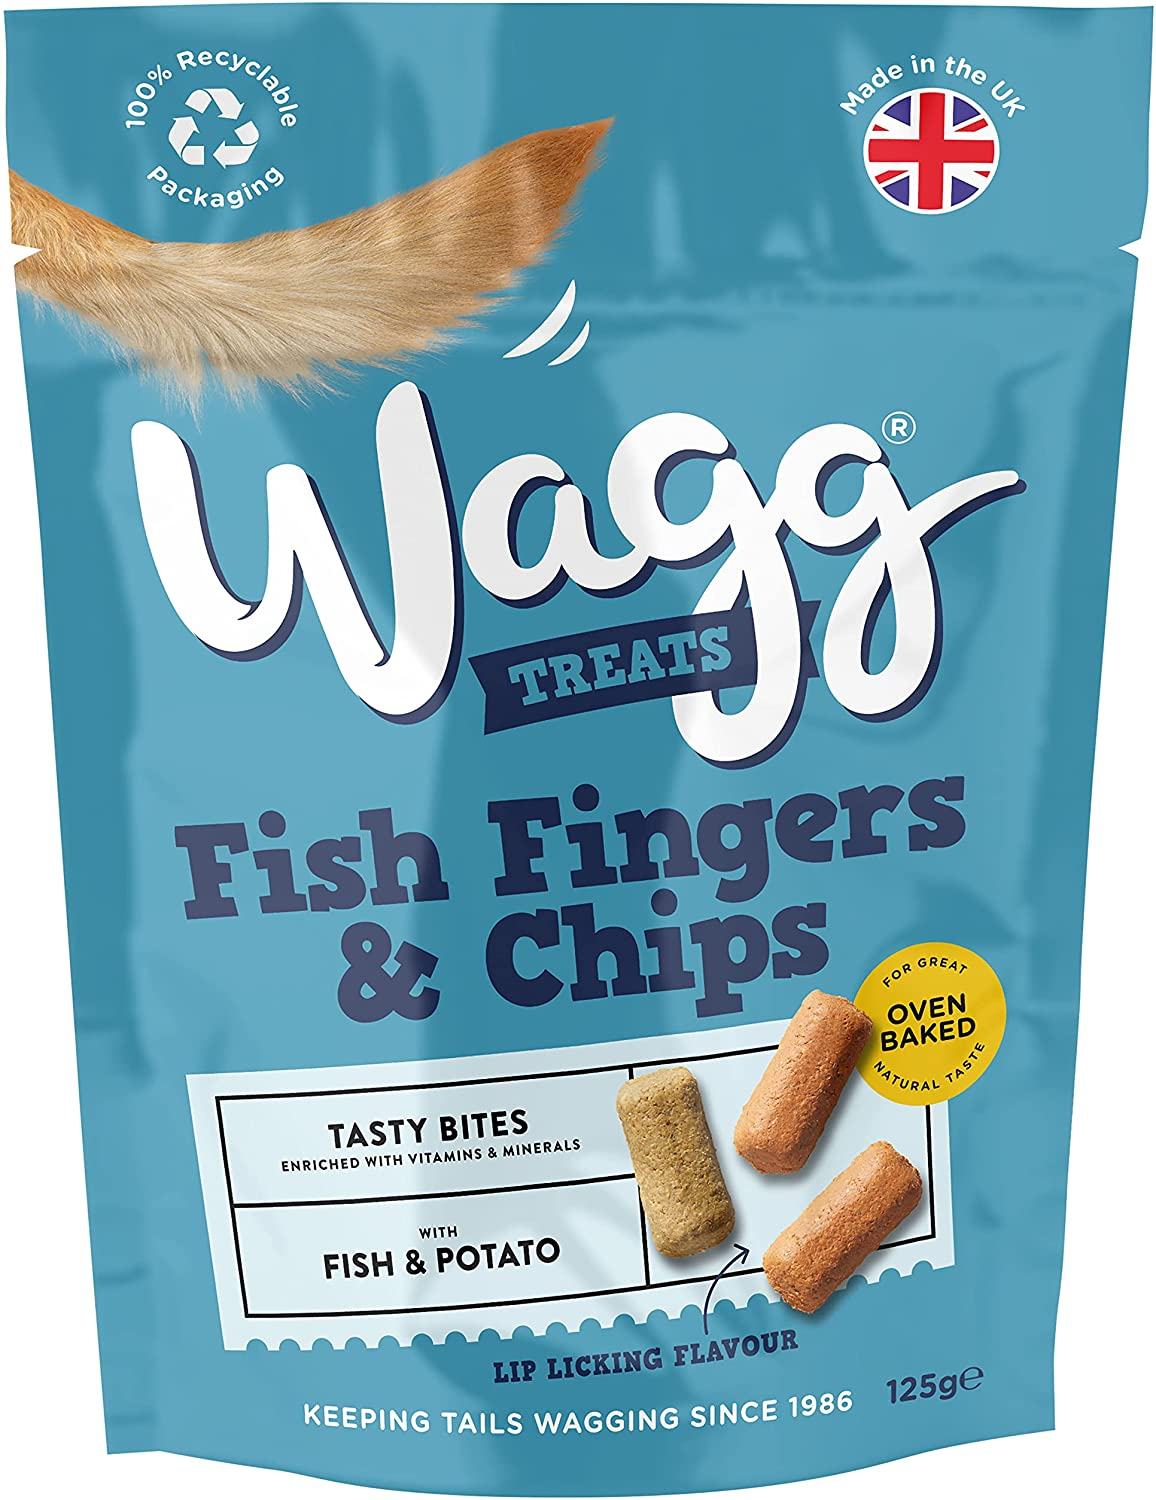 Wagg Fish Fingers & Chips Flavour Dog Treats 125g, Dog Treats by Dog In A Box